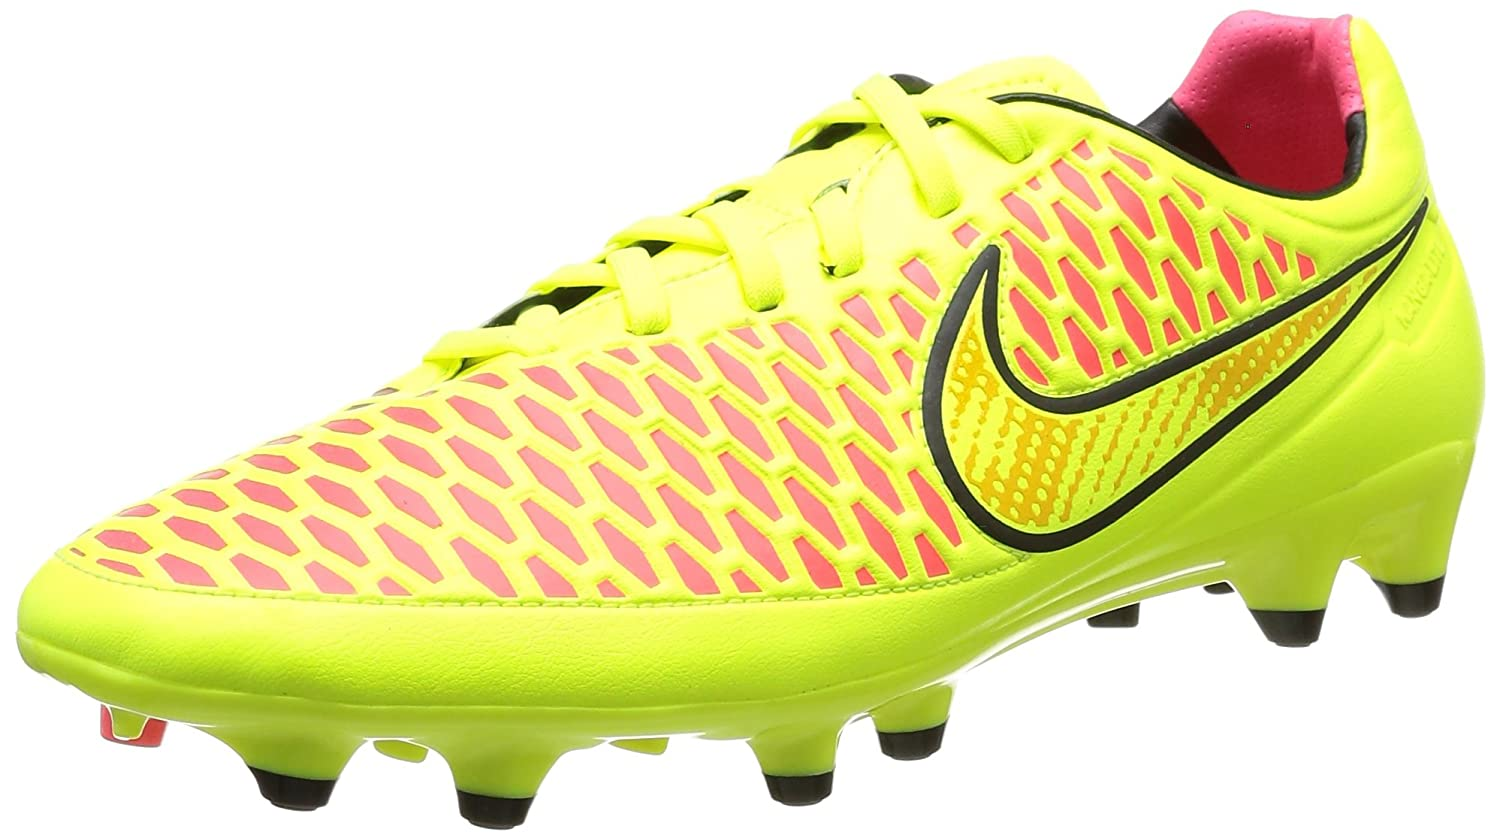 NIKE Men's Magista Orden FG Soccer Cleat B00GCB5GBO 8 D(M) US|VOLT/BLACK/HYPER PUNCH/MTLC GOLD COIN